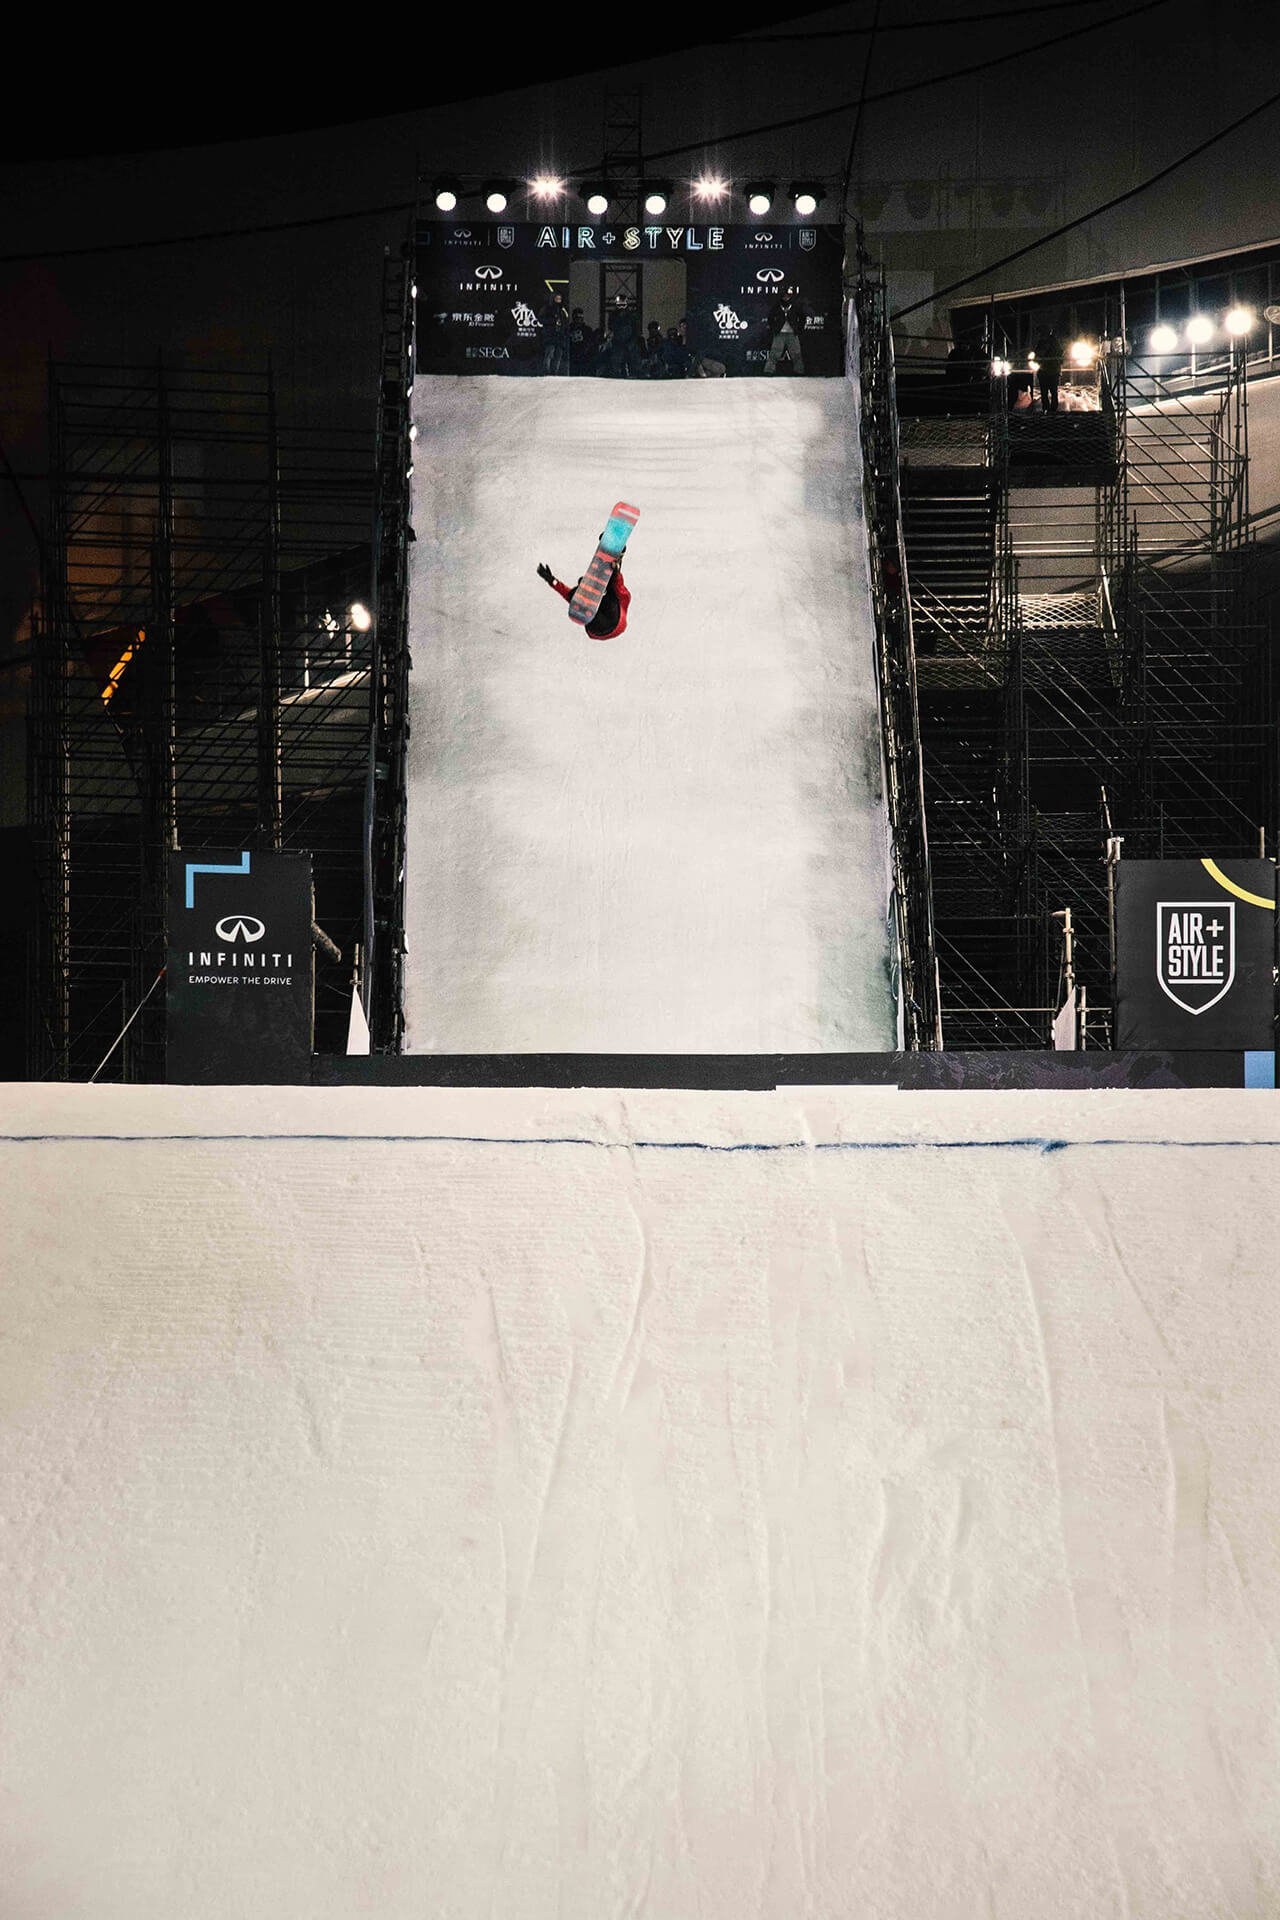 Clemens Millauer Air&Style @ Bejing